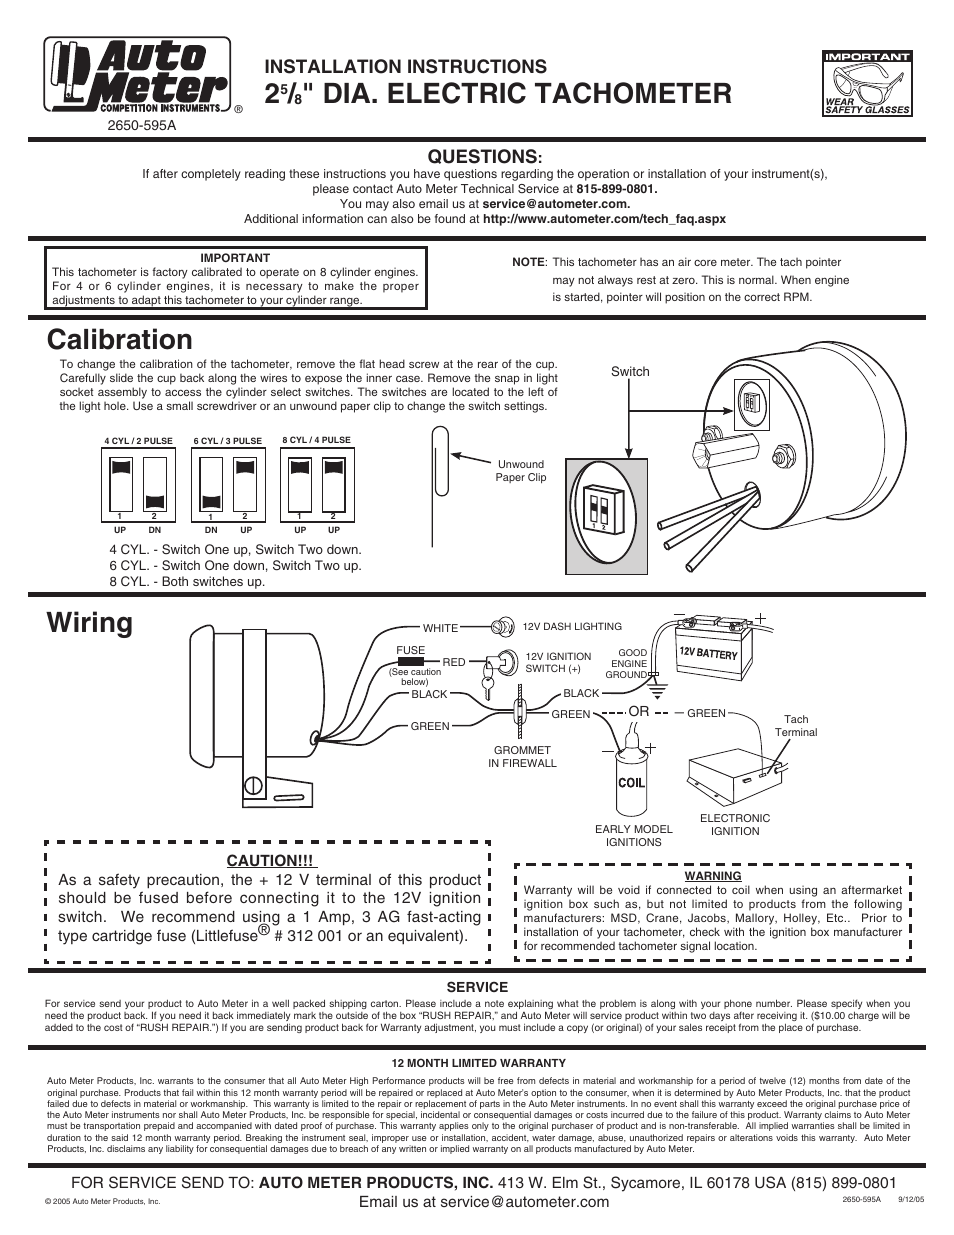 Sun Pro Tach Wiring Diagram from wiringall.com